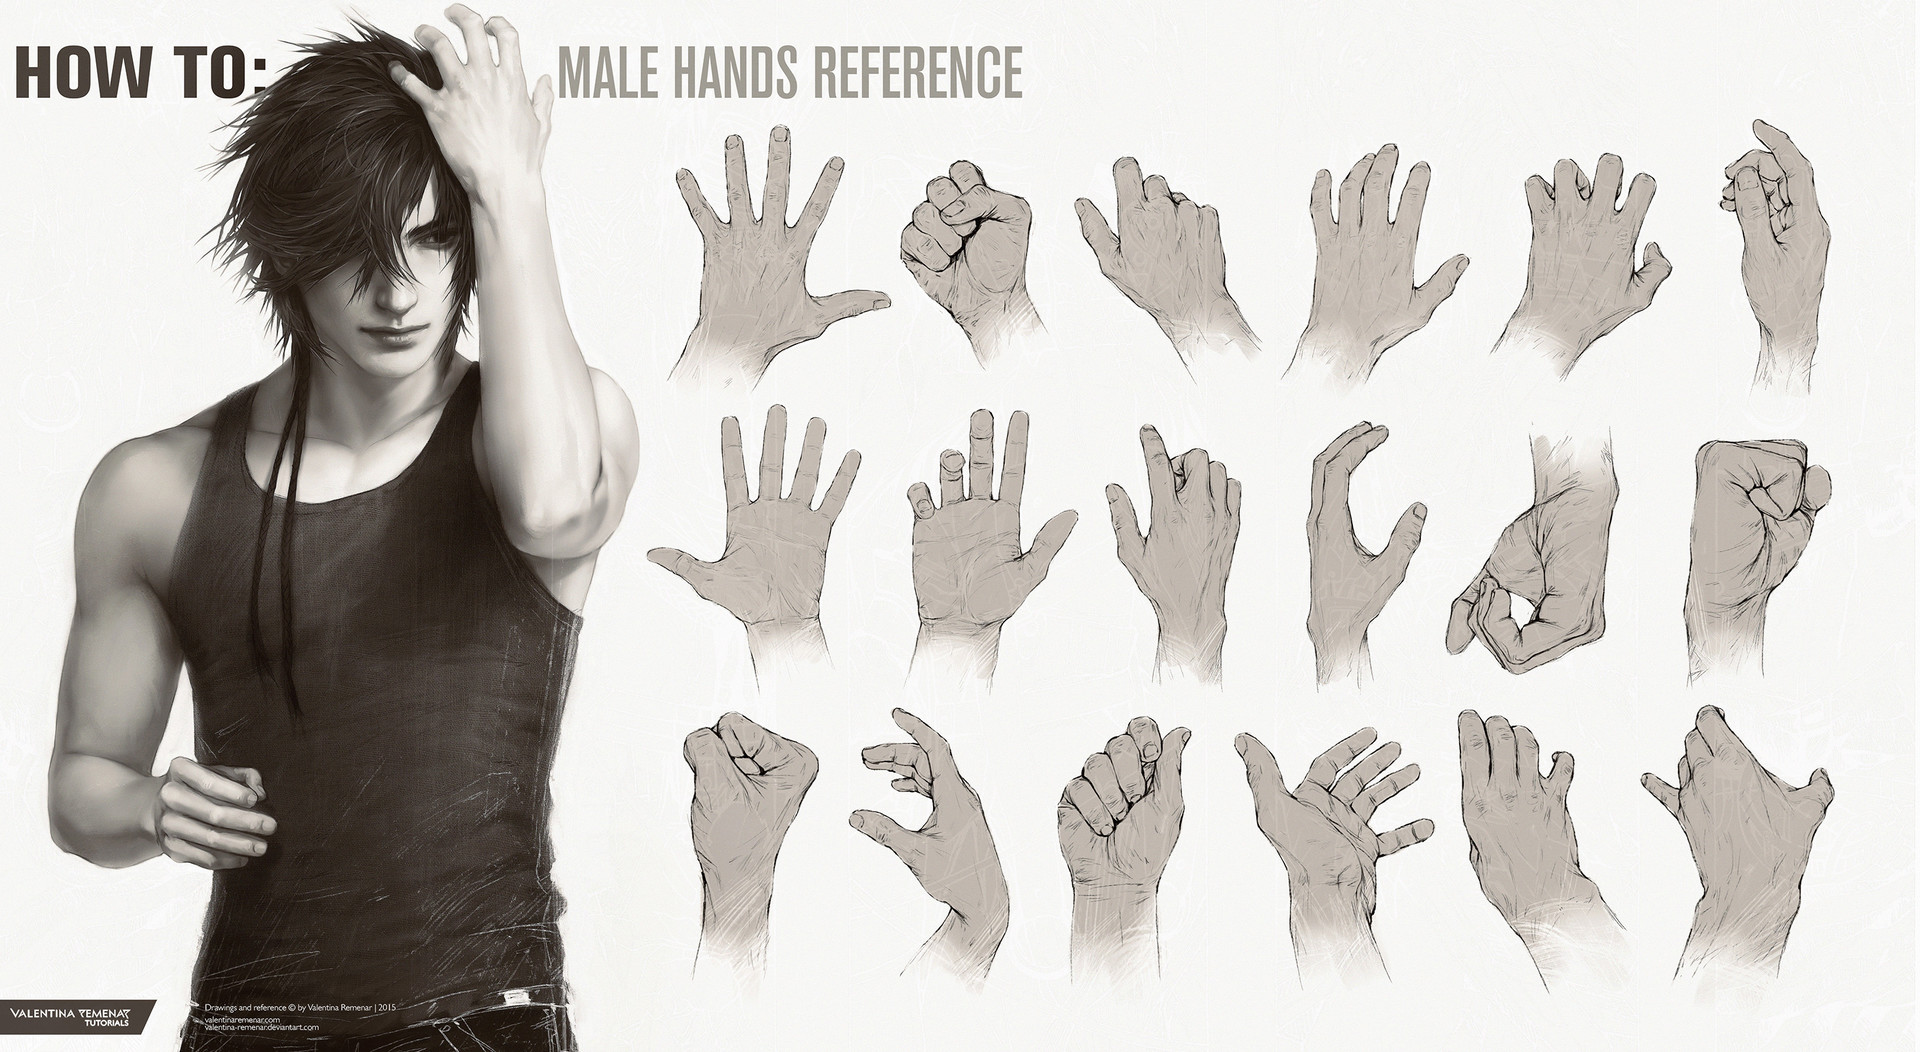 Valentina remenar how to male hands reference by valentina remenar